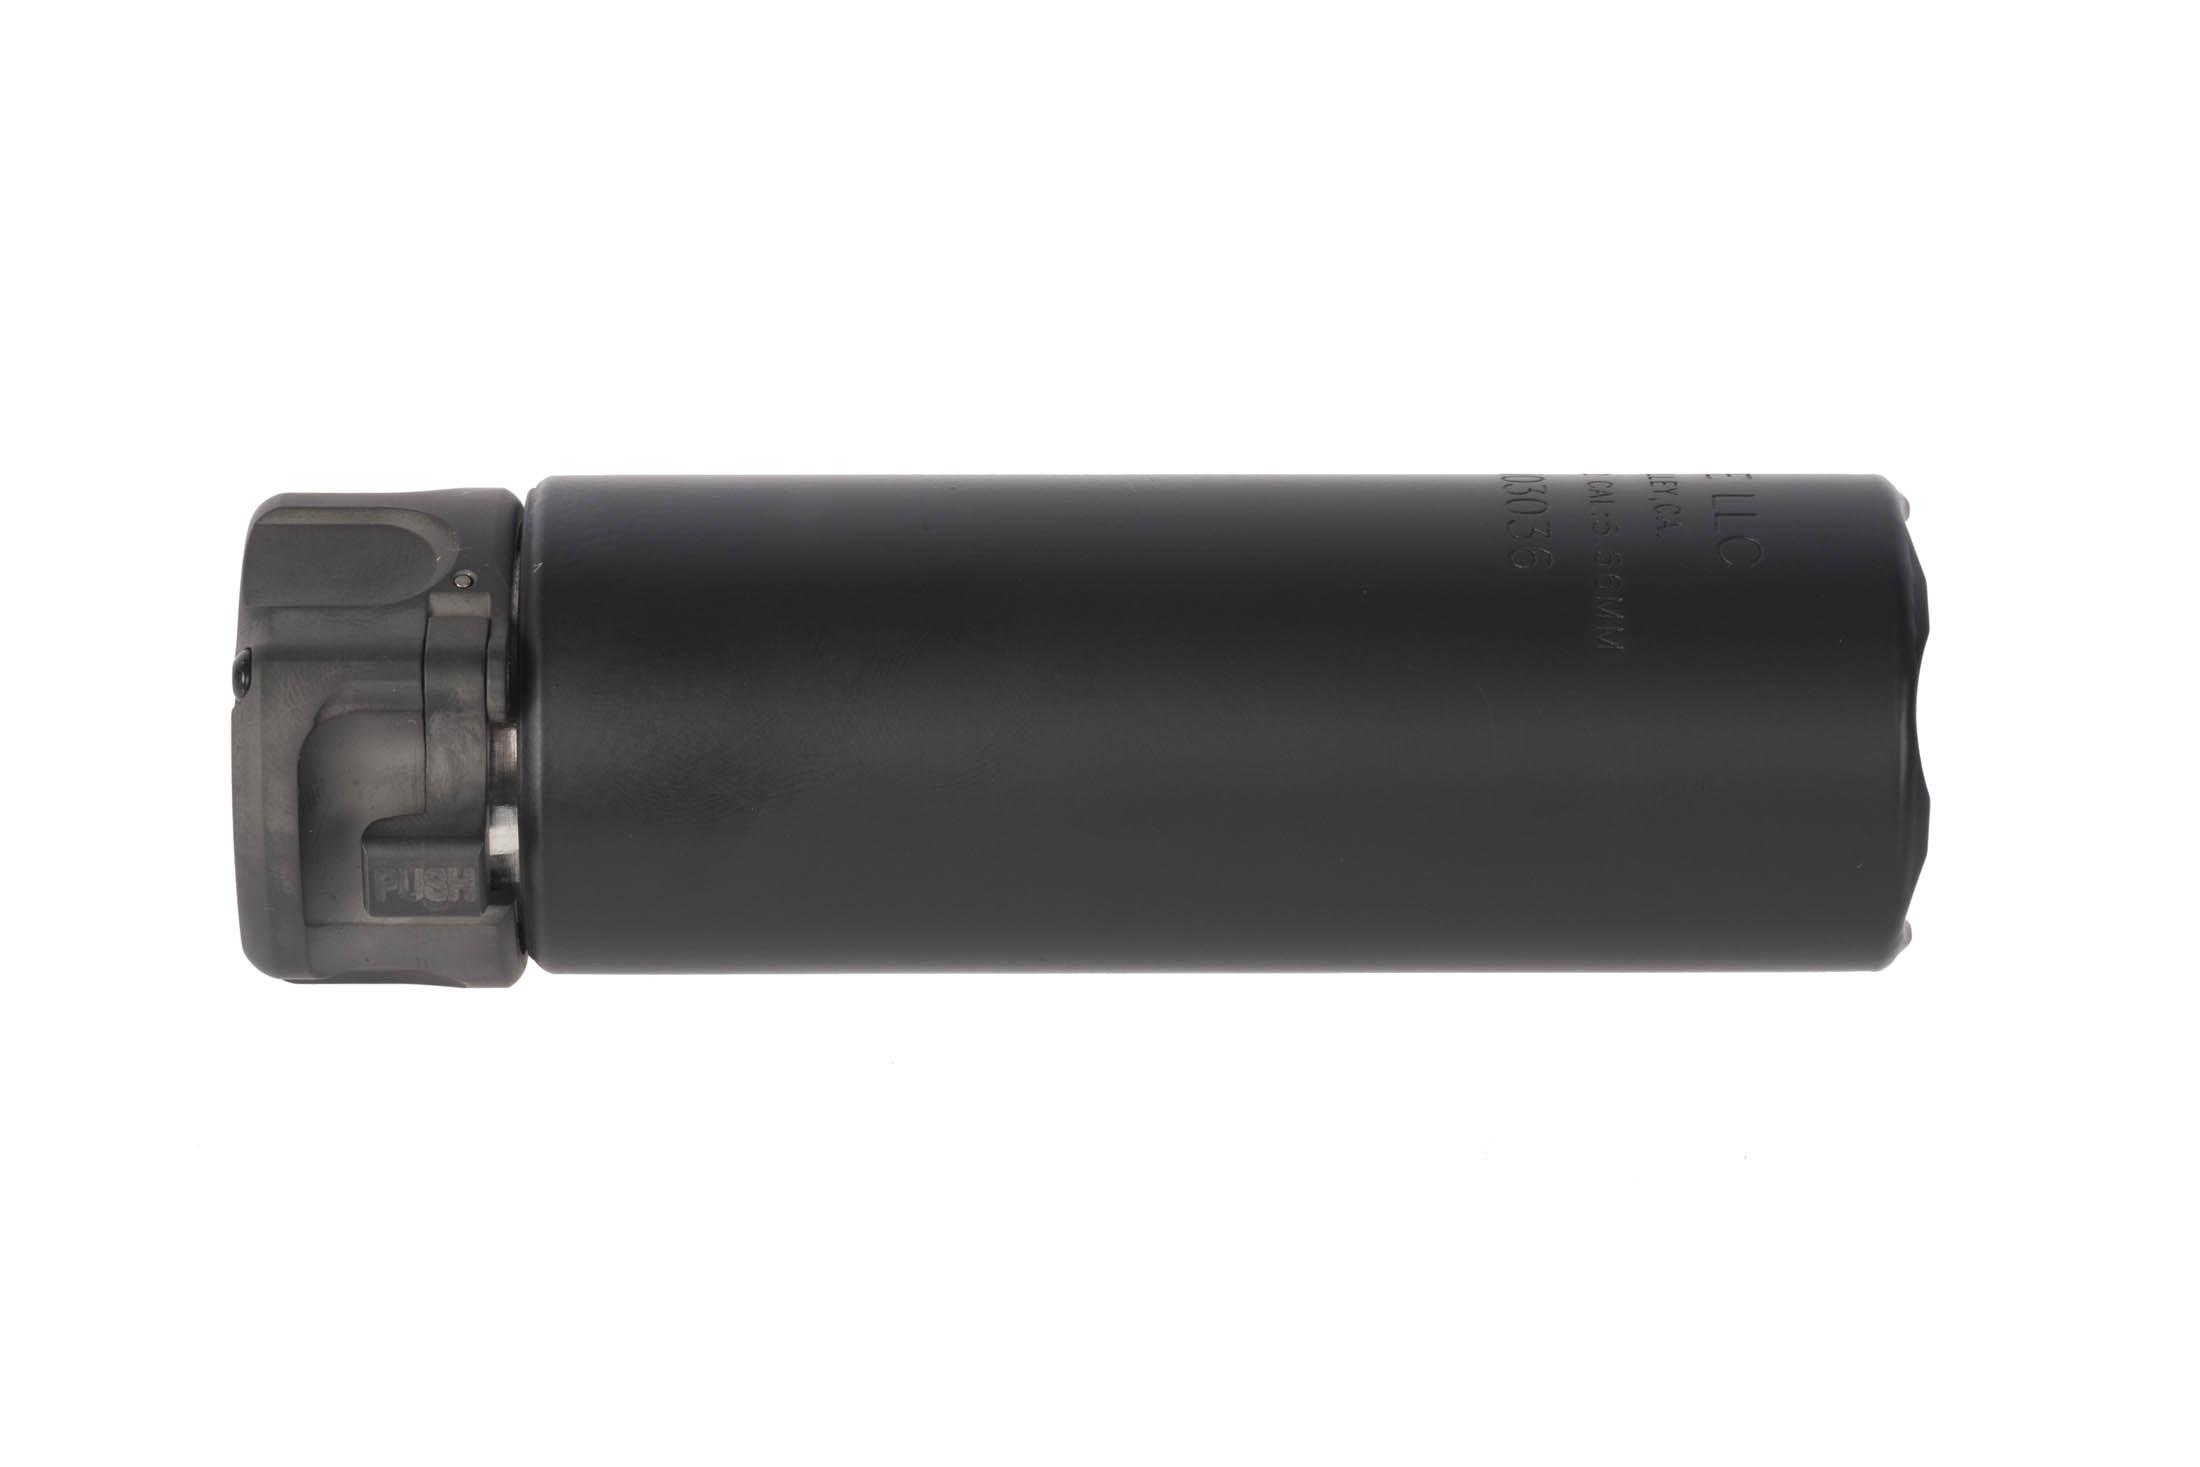 SureFire SOCOM 2 Mini 5.56 Sound Suppressor with black Cerakote finish is just 5.0in in length and weighs less than 15 oz